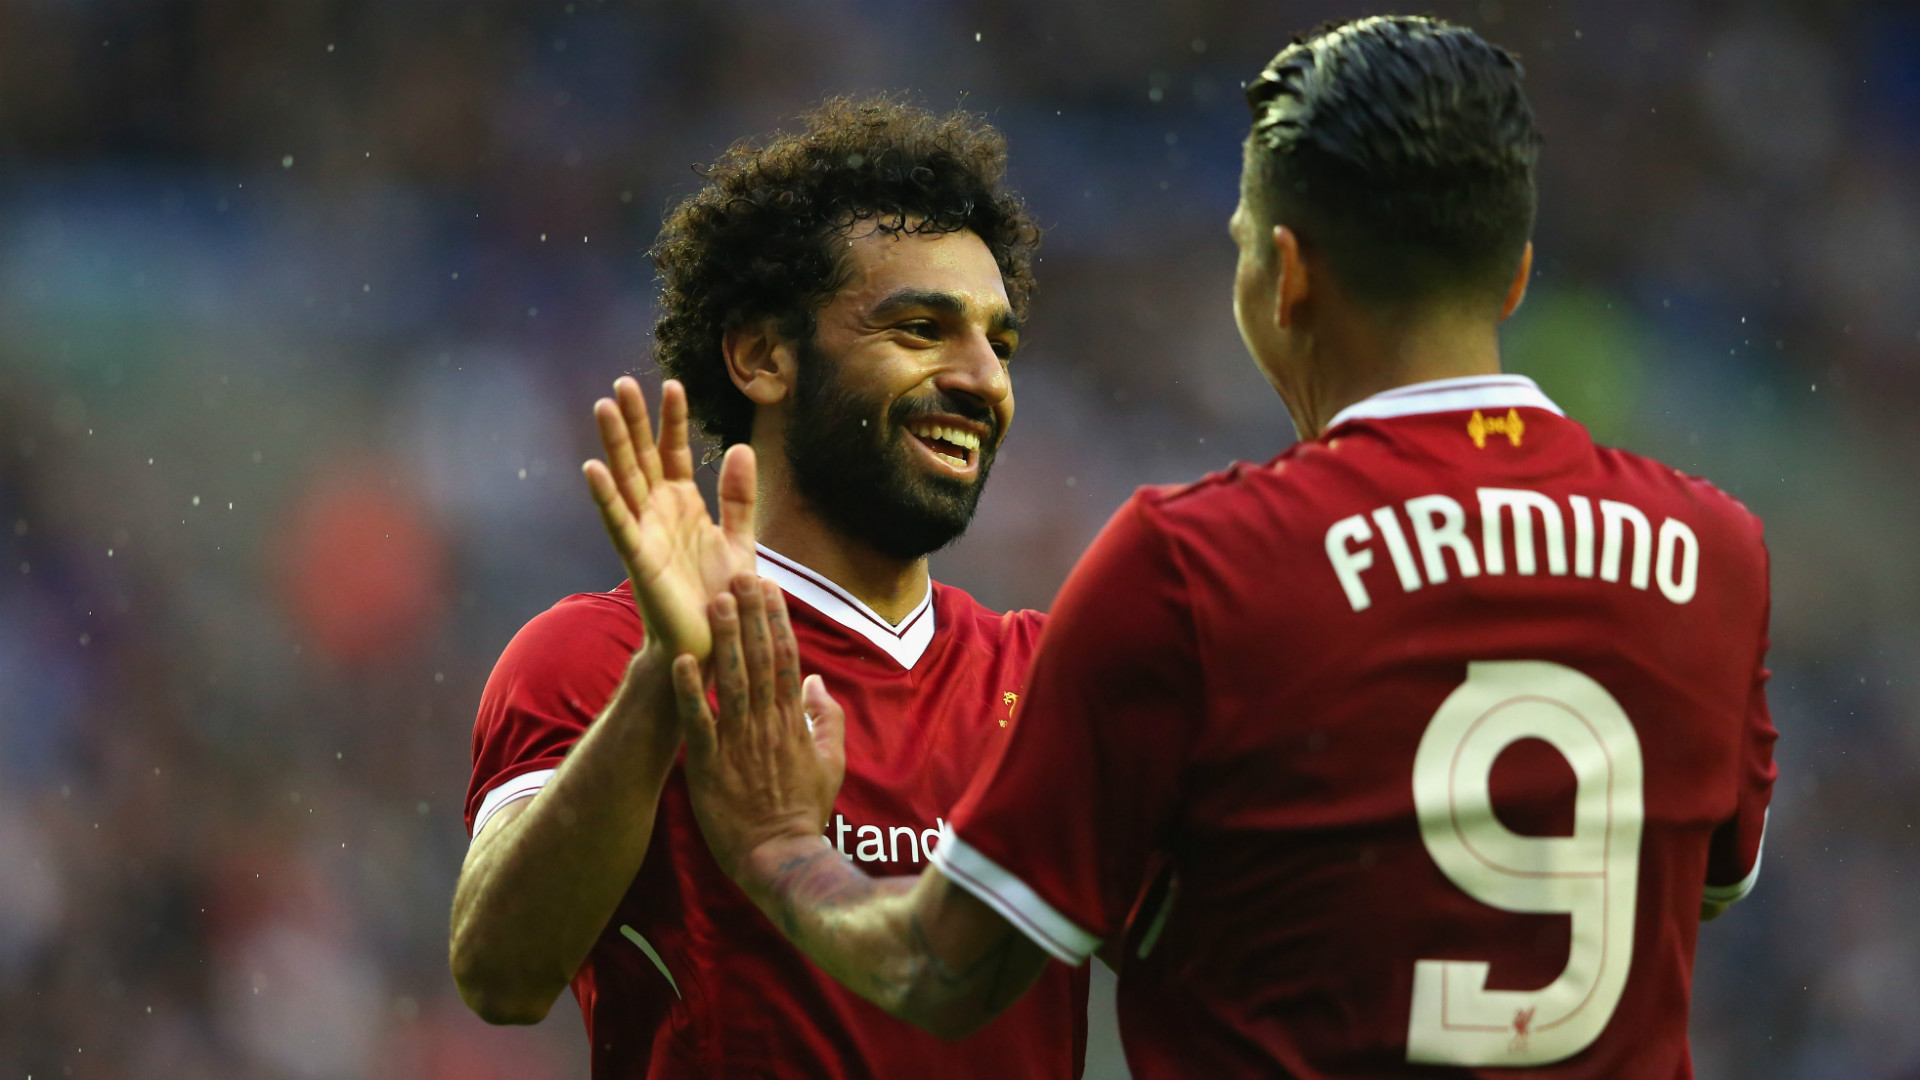 Liverpool Boss Jurgen Klopp 'ignored' Mohamed Salah's